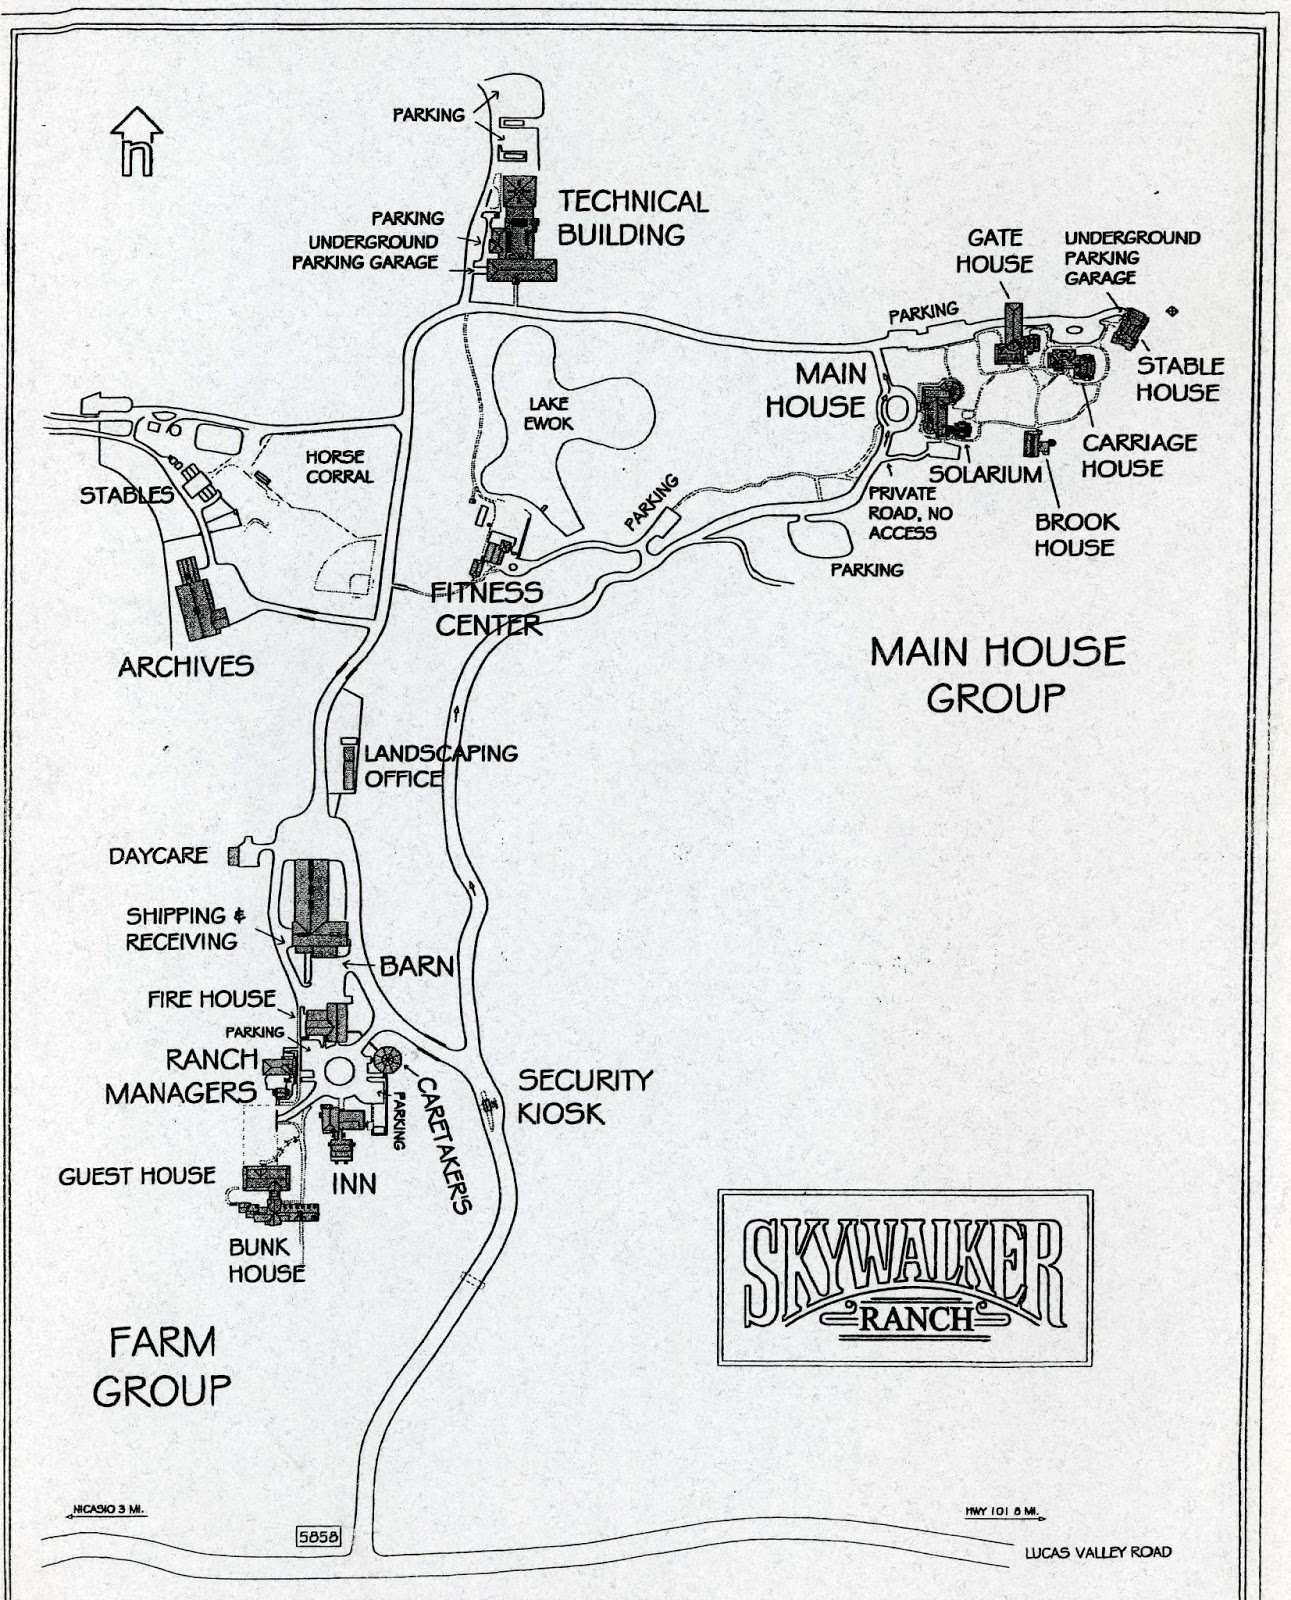 Skywalker Ranch Map